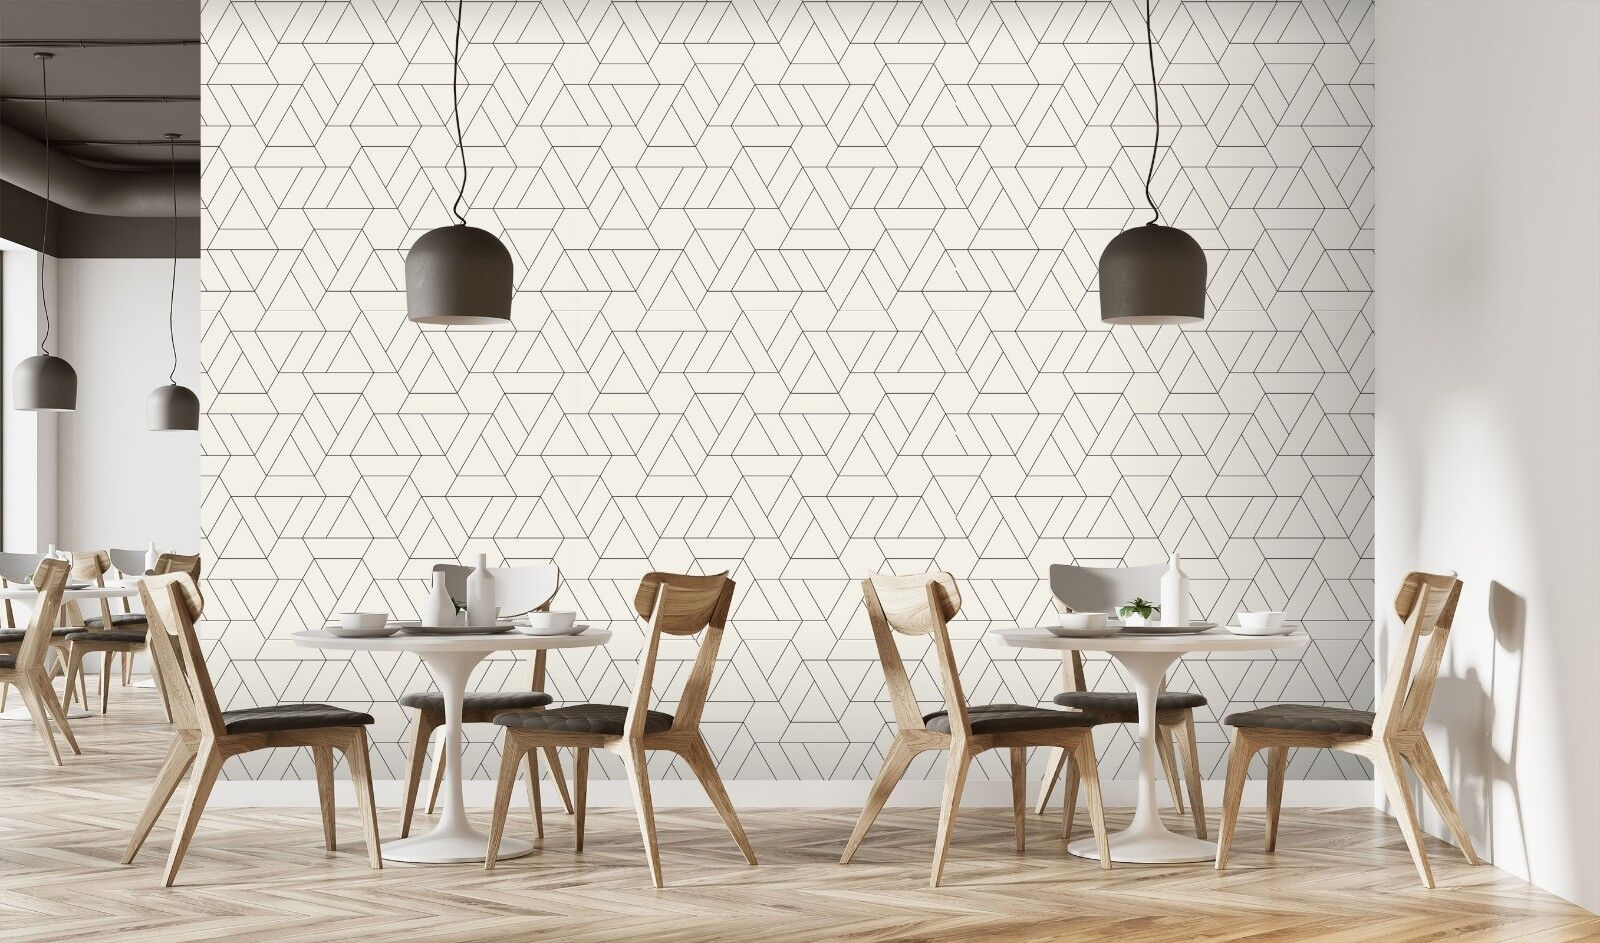 3D Overlapping Pattern 55 Texture Tiles Marble Wall Paper Decal Wallpaper Mural